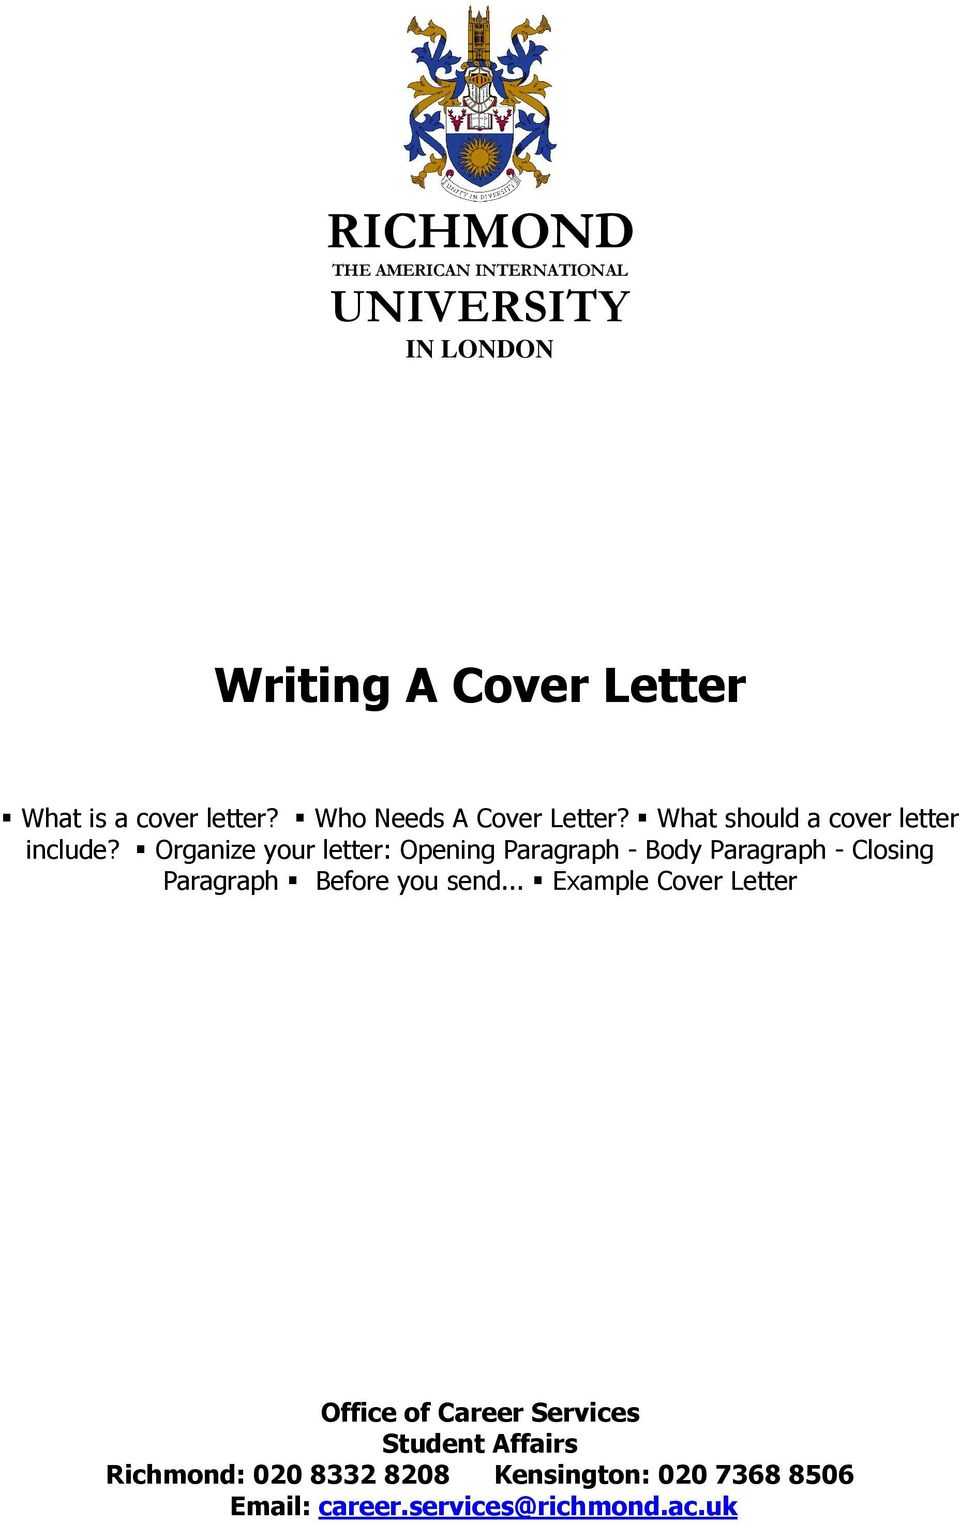 Organize your letter: Opening Paragraph - Body Paragraph - Closing Paragraph Before you send.